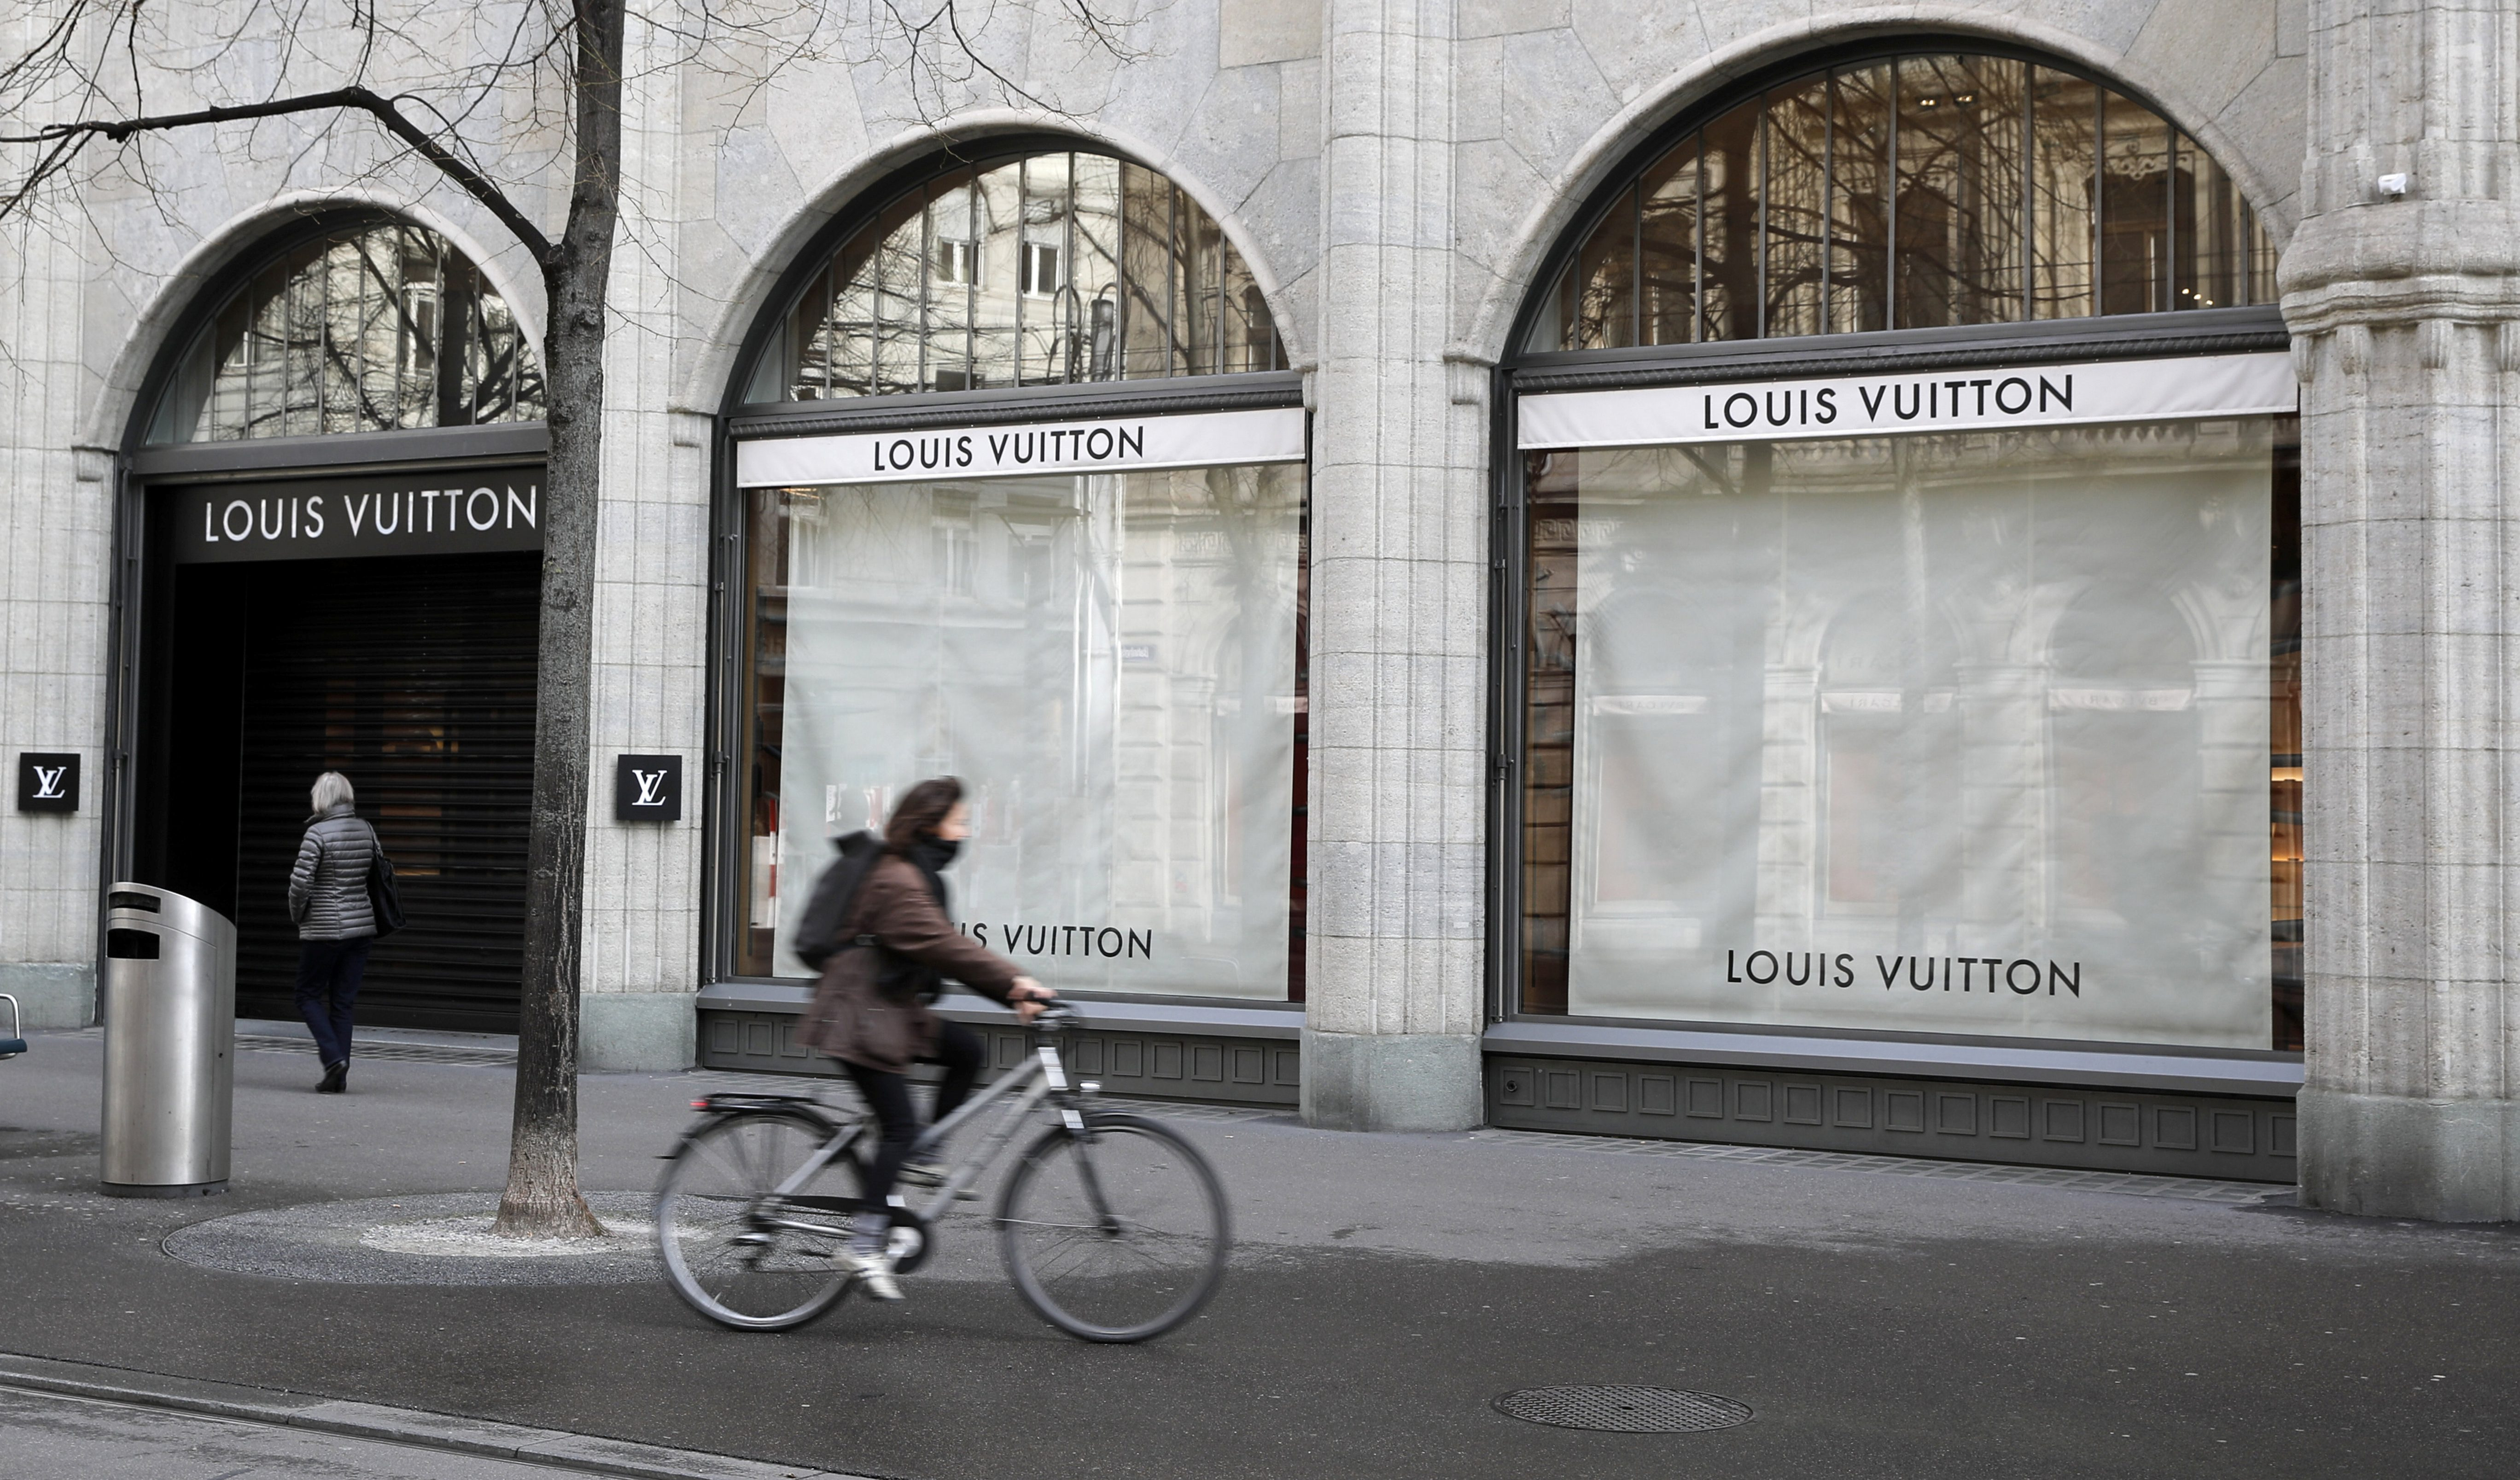 A woman cycles past a closed shop French luxury company Louis Vuitton at the Bahnhofstrasse shopping street in Zurich